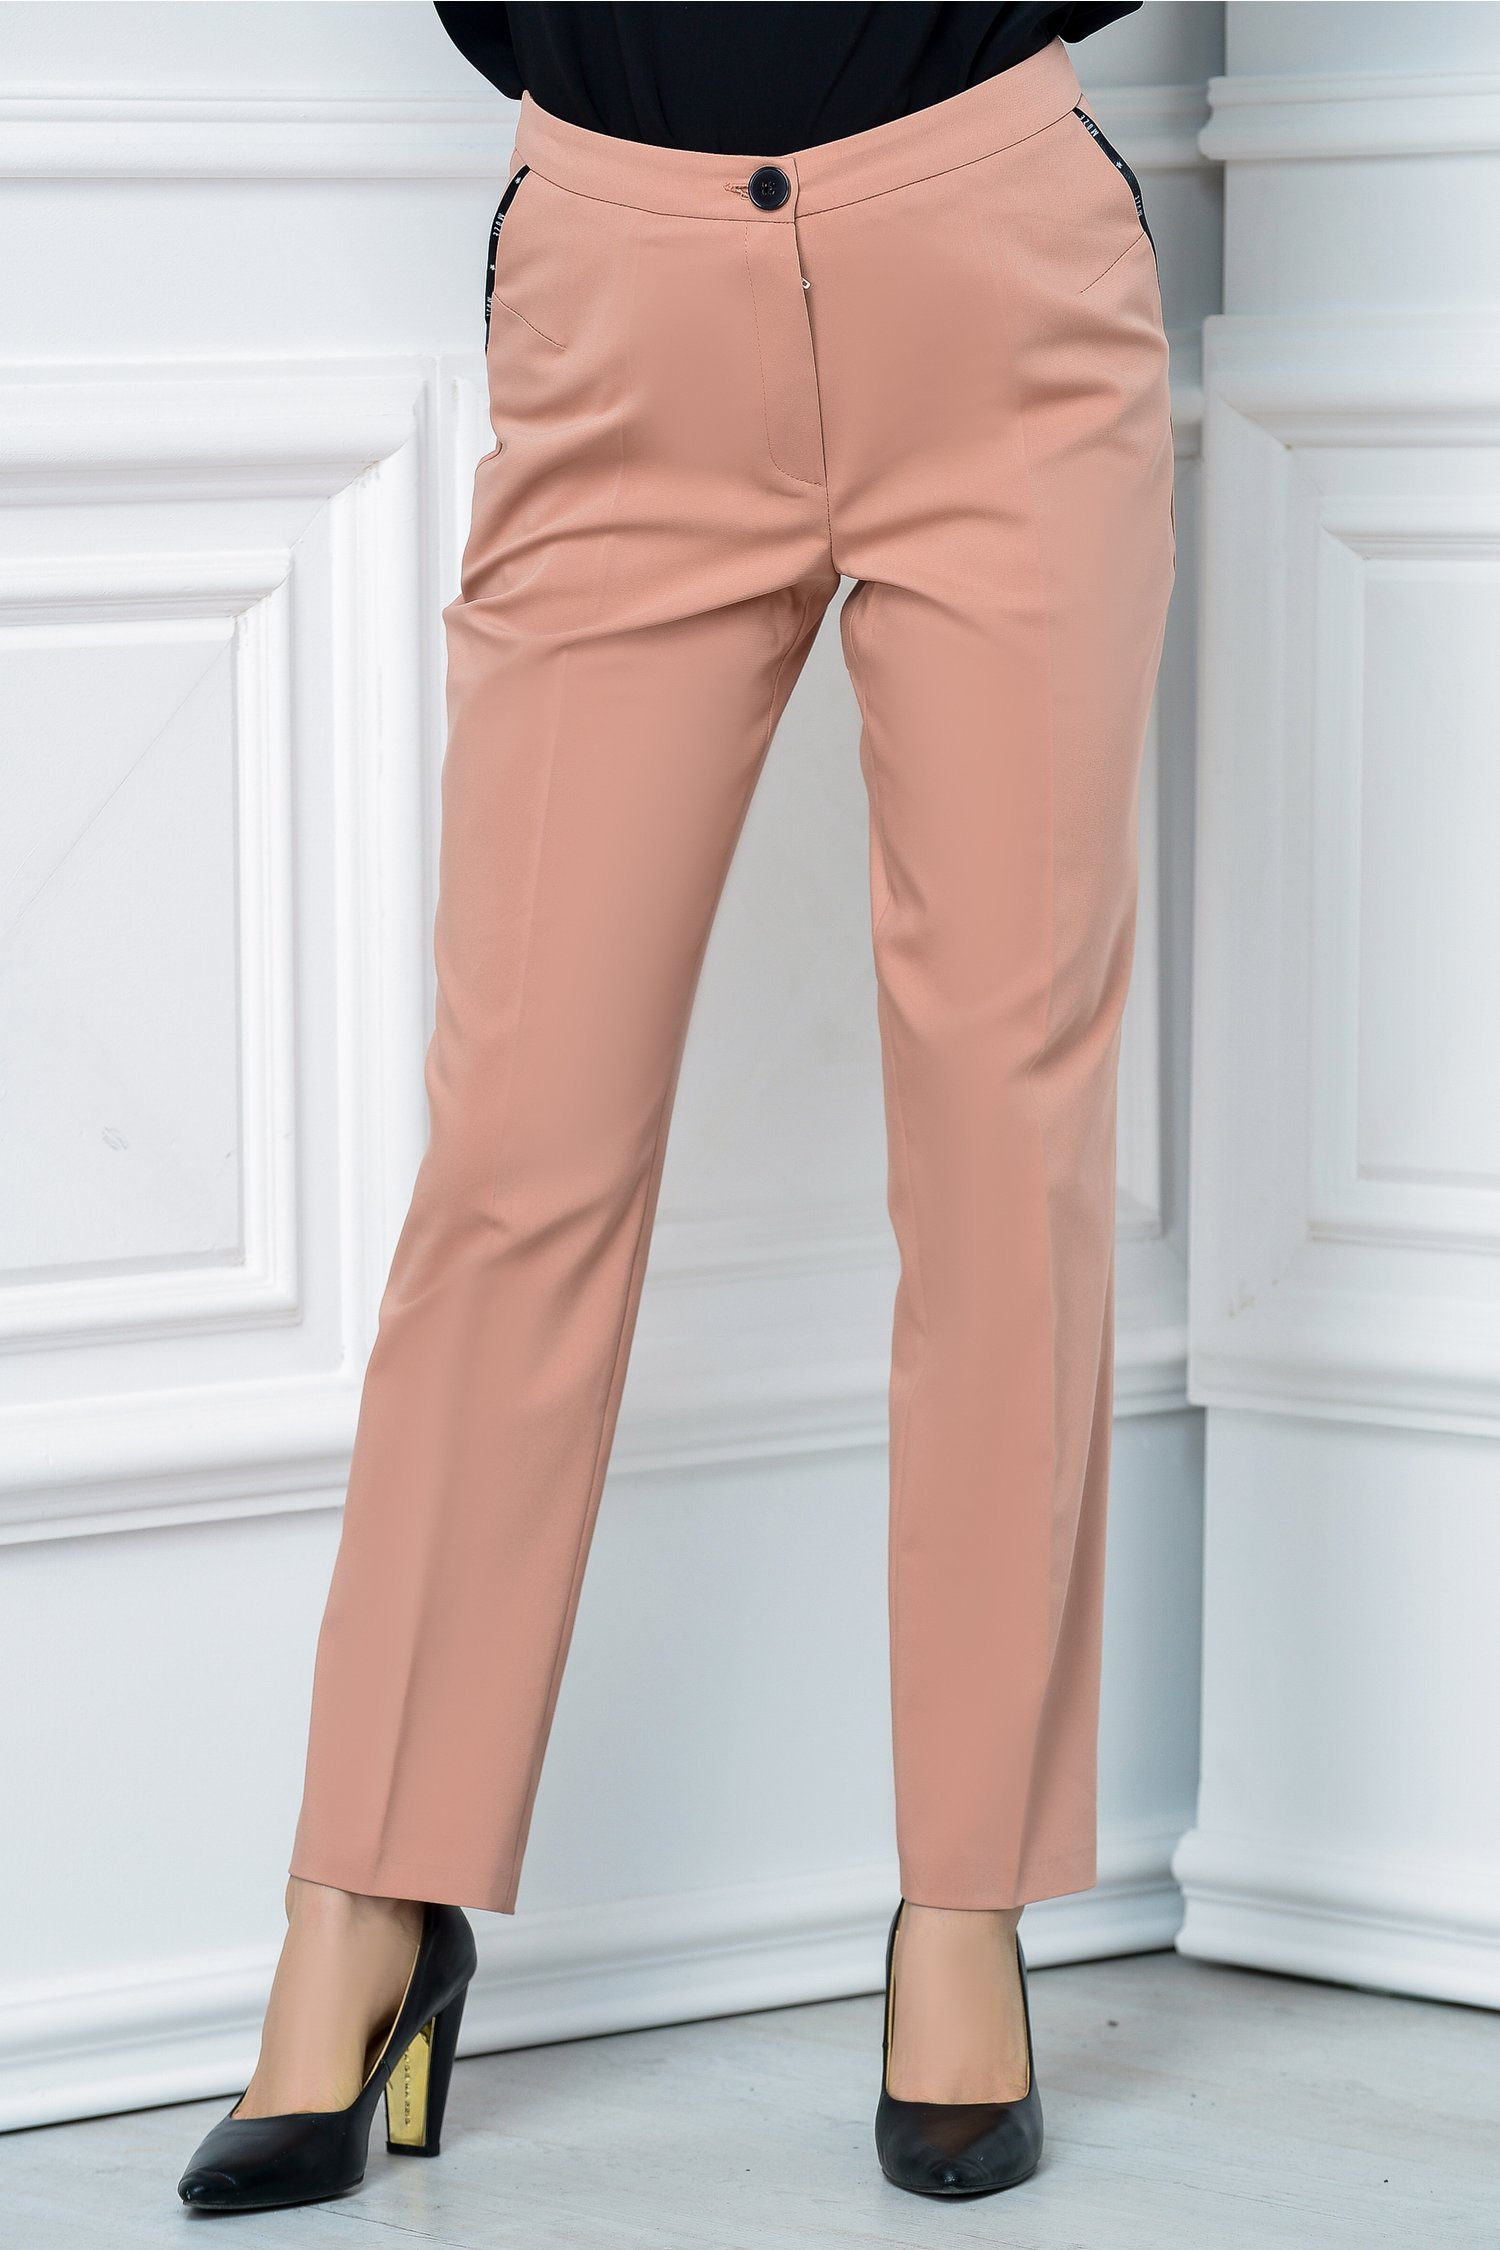 Pantalon Moze office slim roz praf